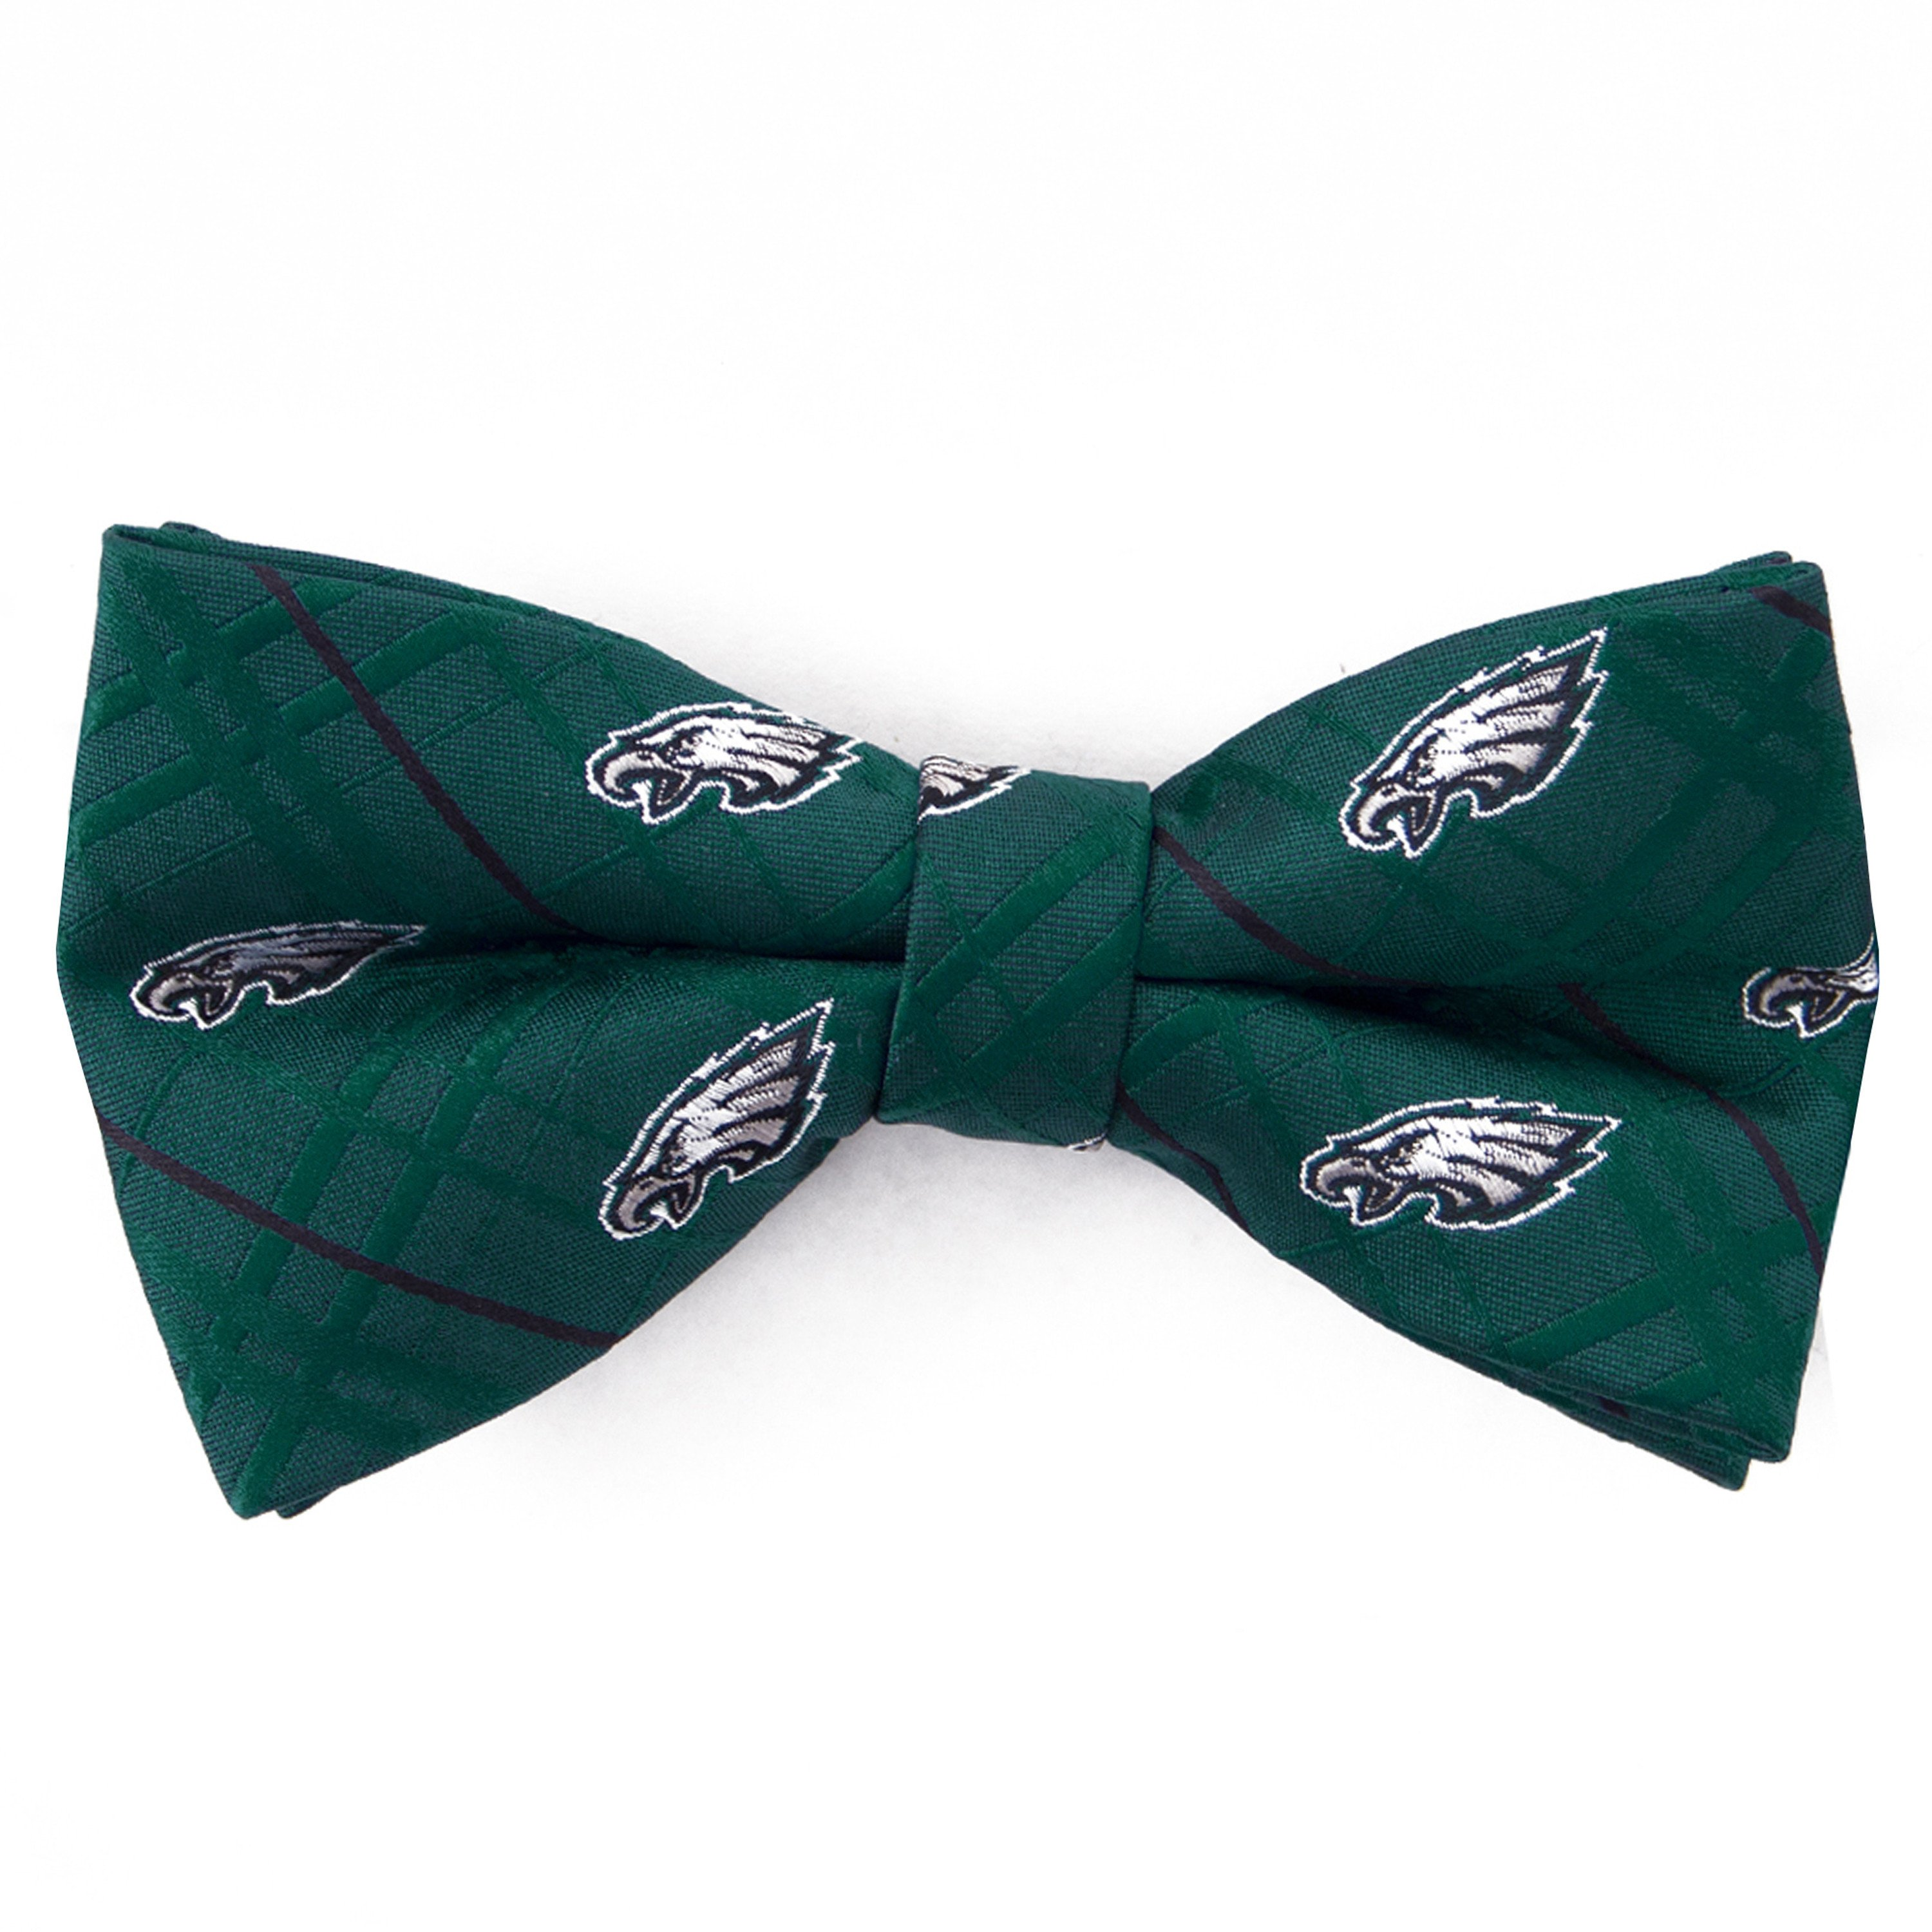 Eagles-oxford-bowties